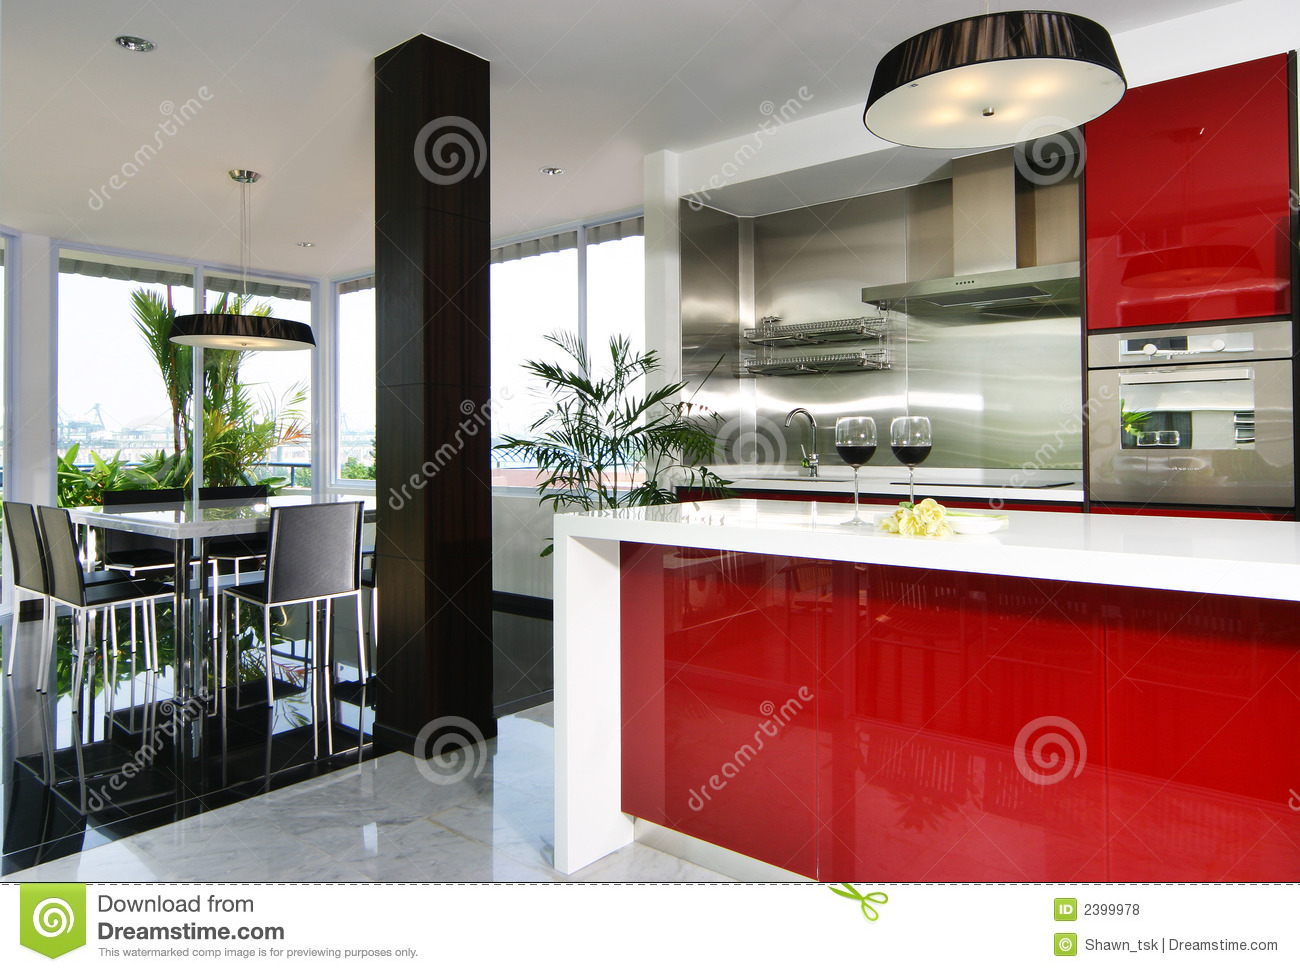 Interior design kitchen stock photo image of gloss for Kitchen interior images